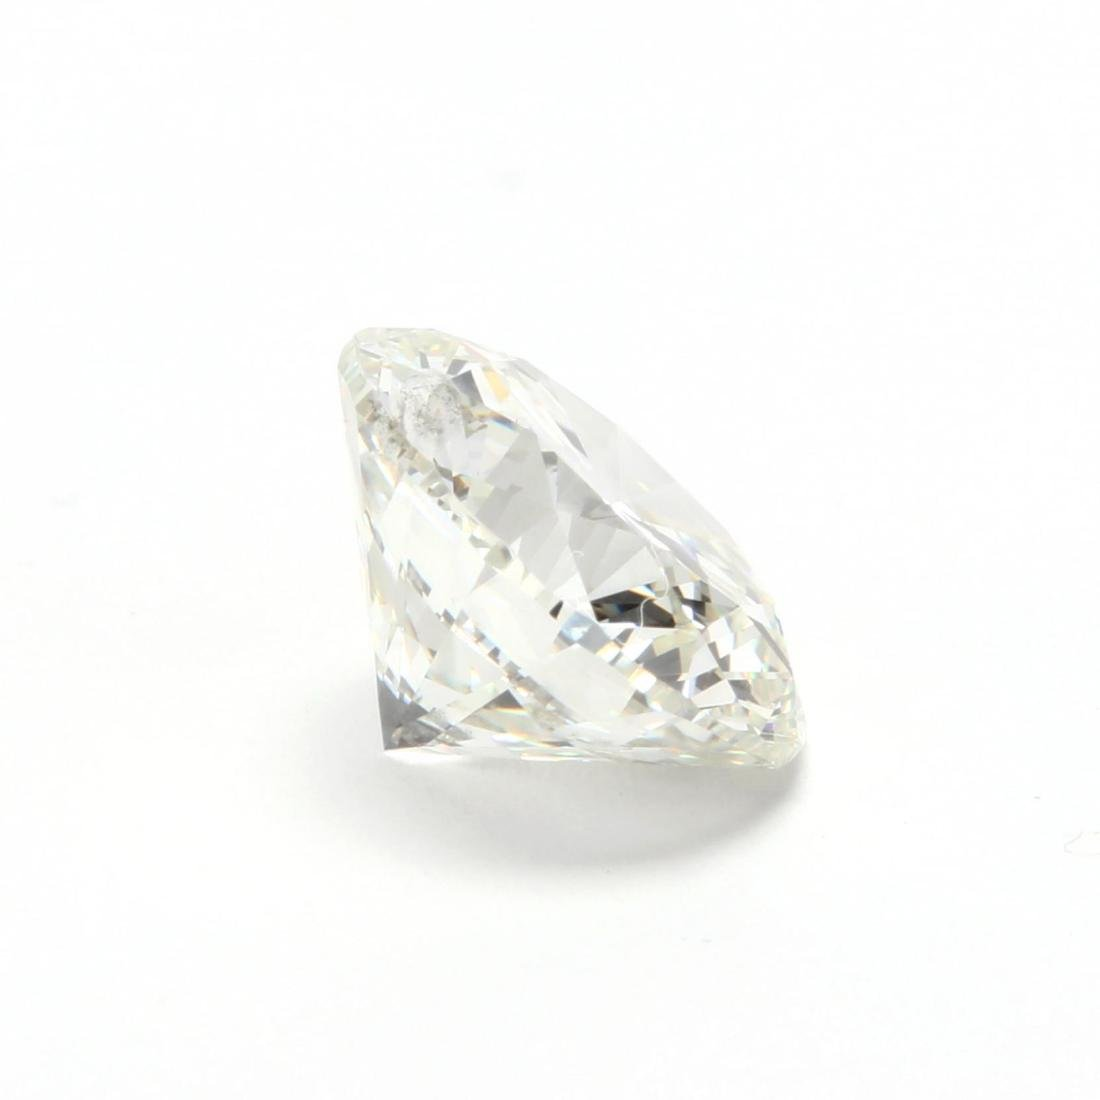 Unmounted Round Brilliant Cut Diamond and 14KT Gold - 3